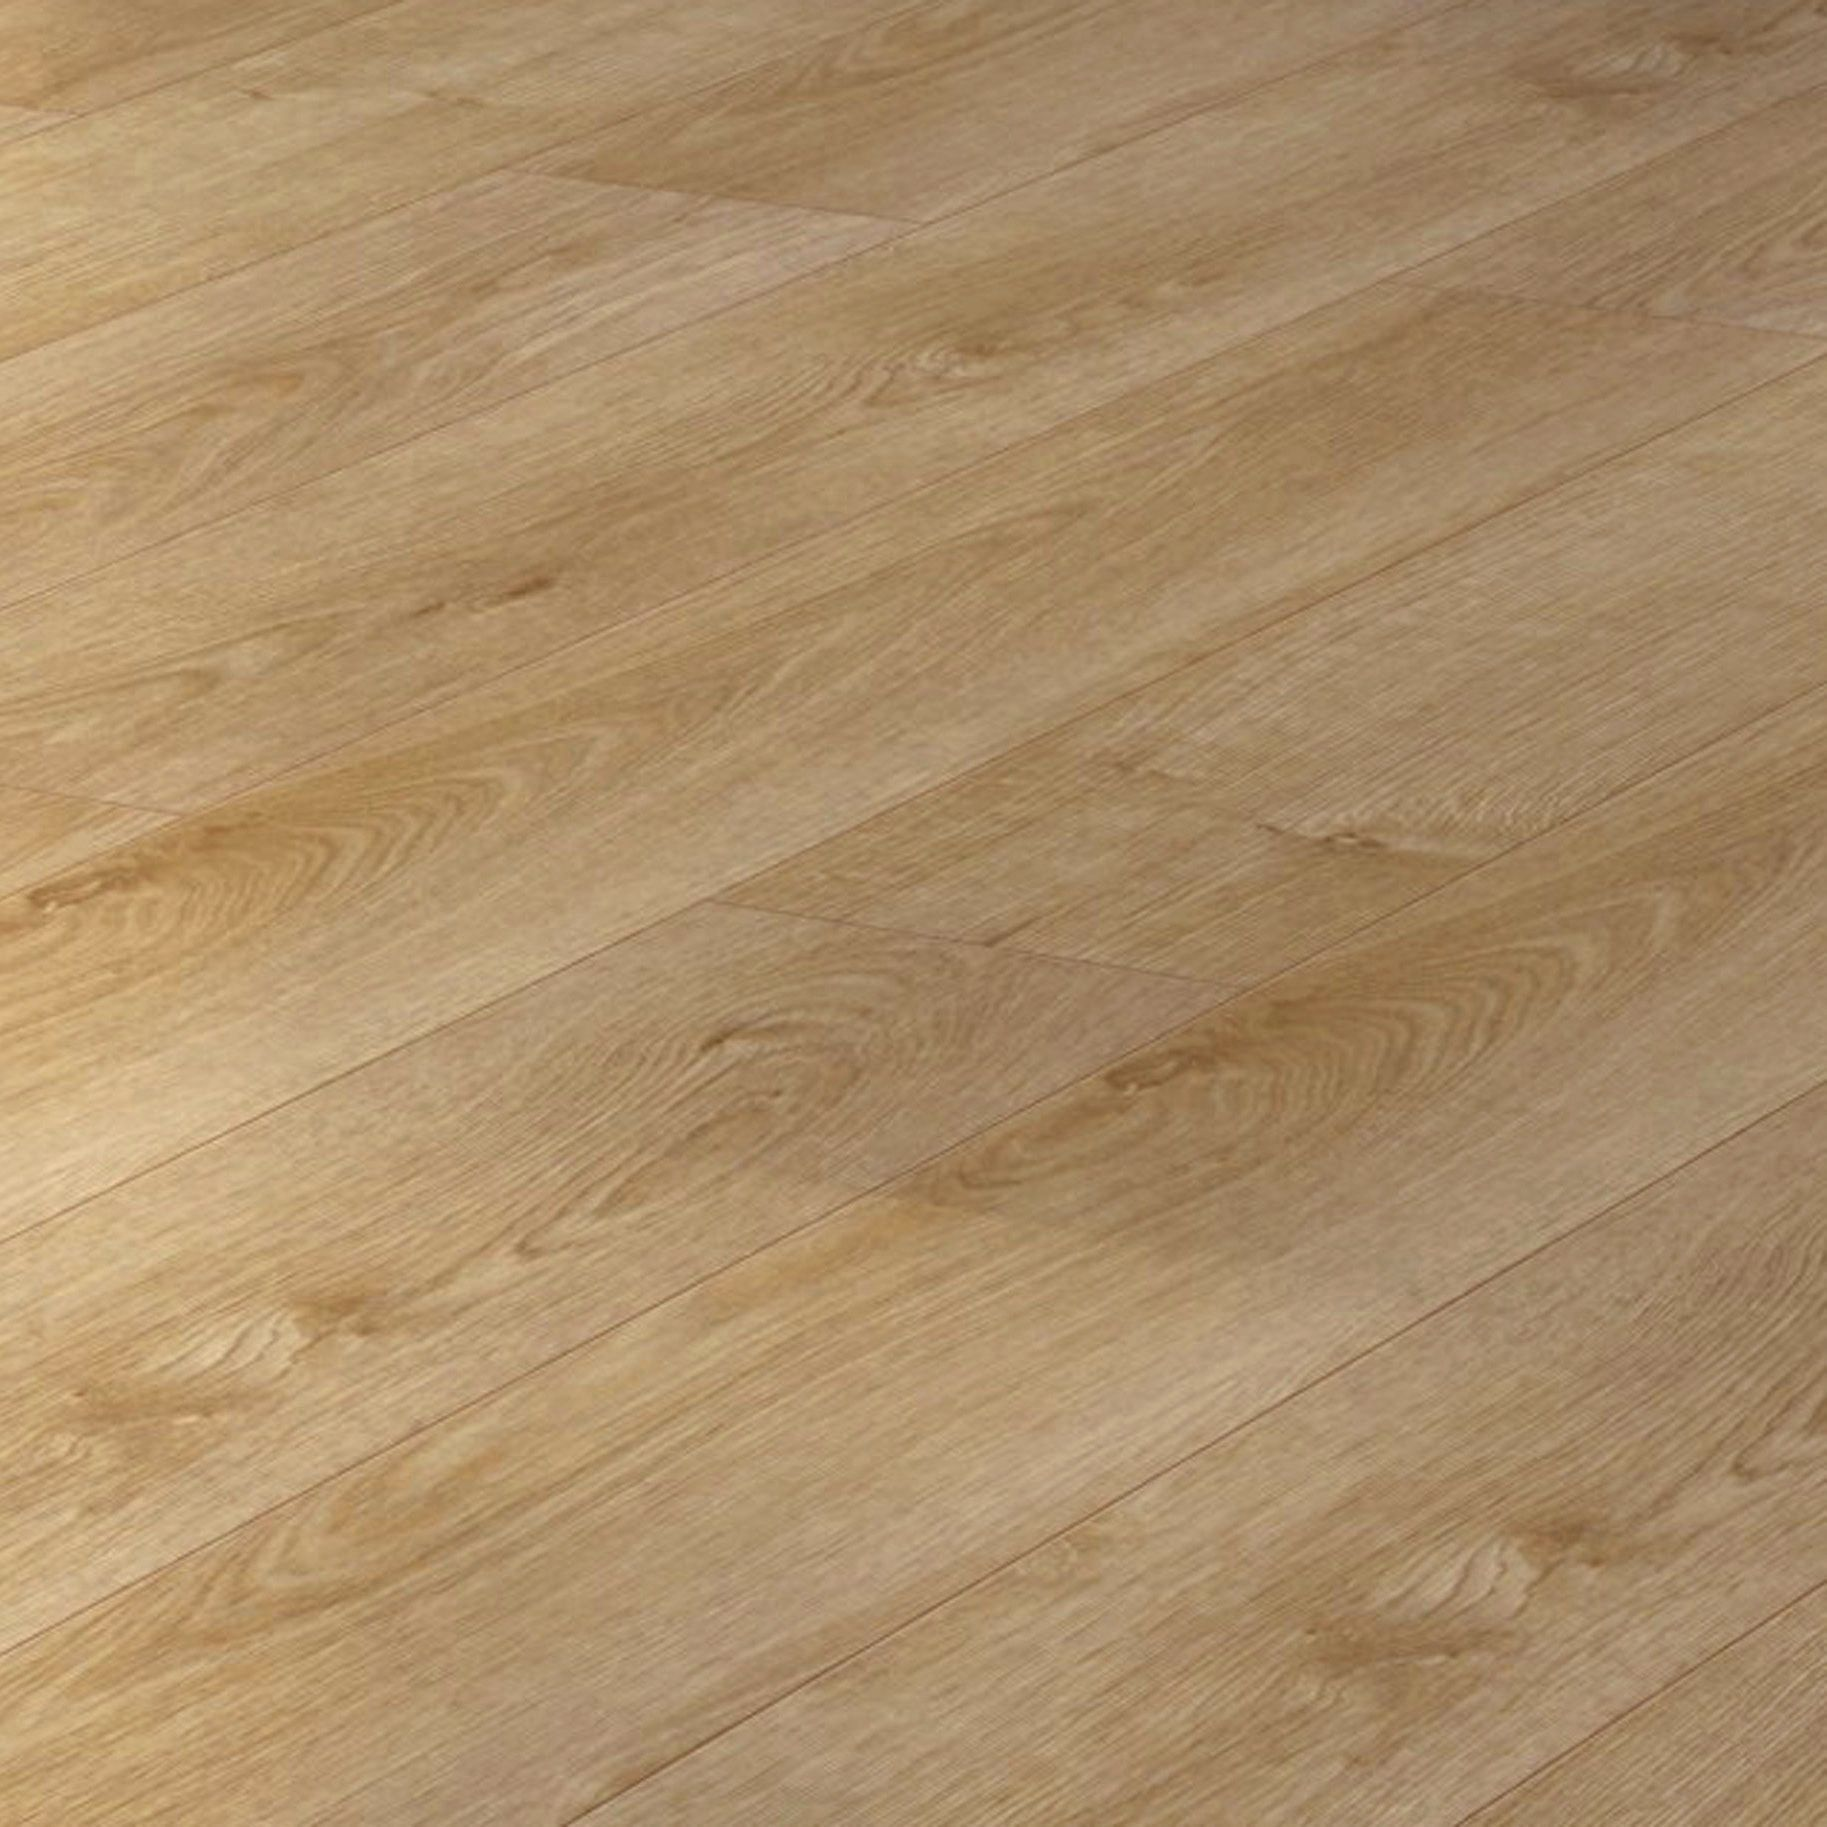 Overture Natural Milano Oak Effect Laminate Flooring 1.25 m Pack |  Departments | DIY at B&Q.